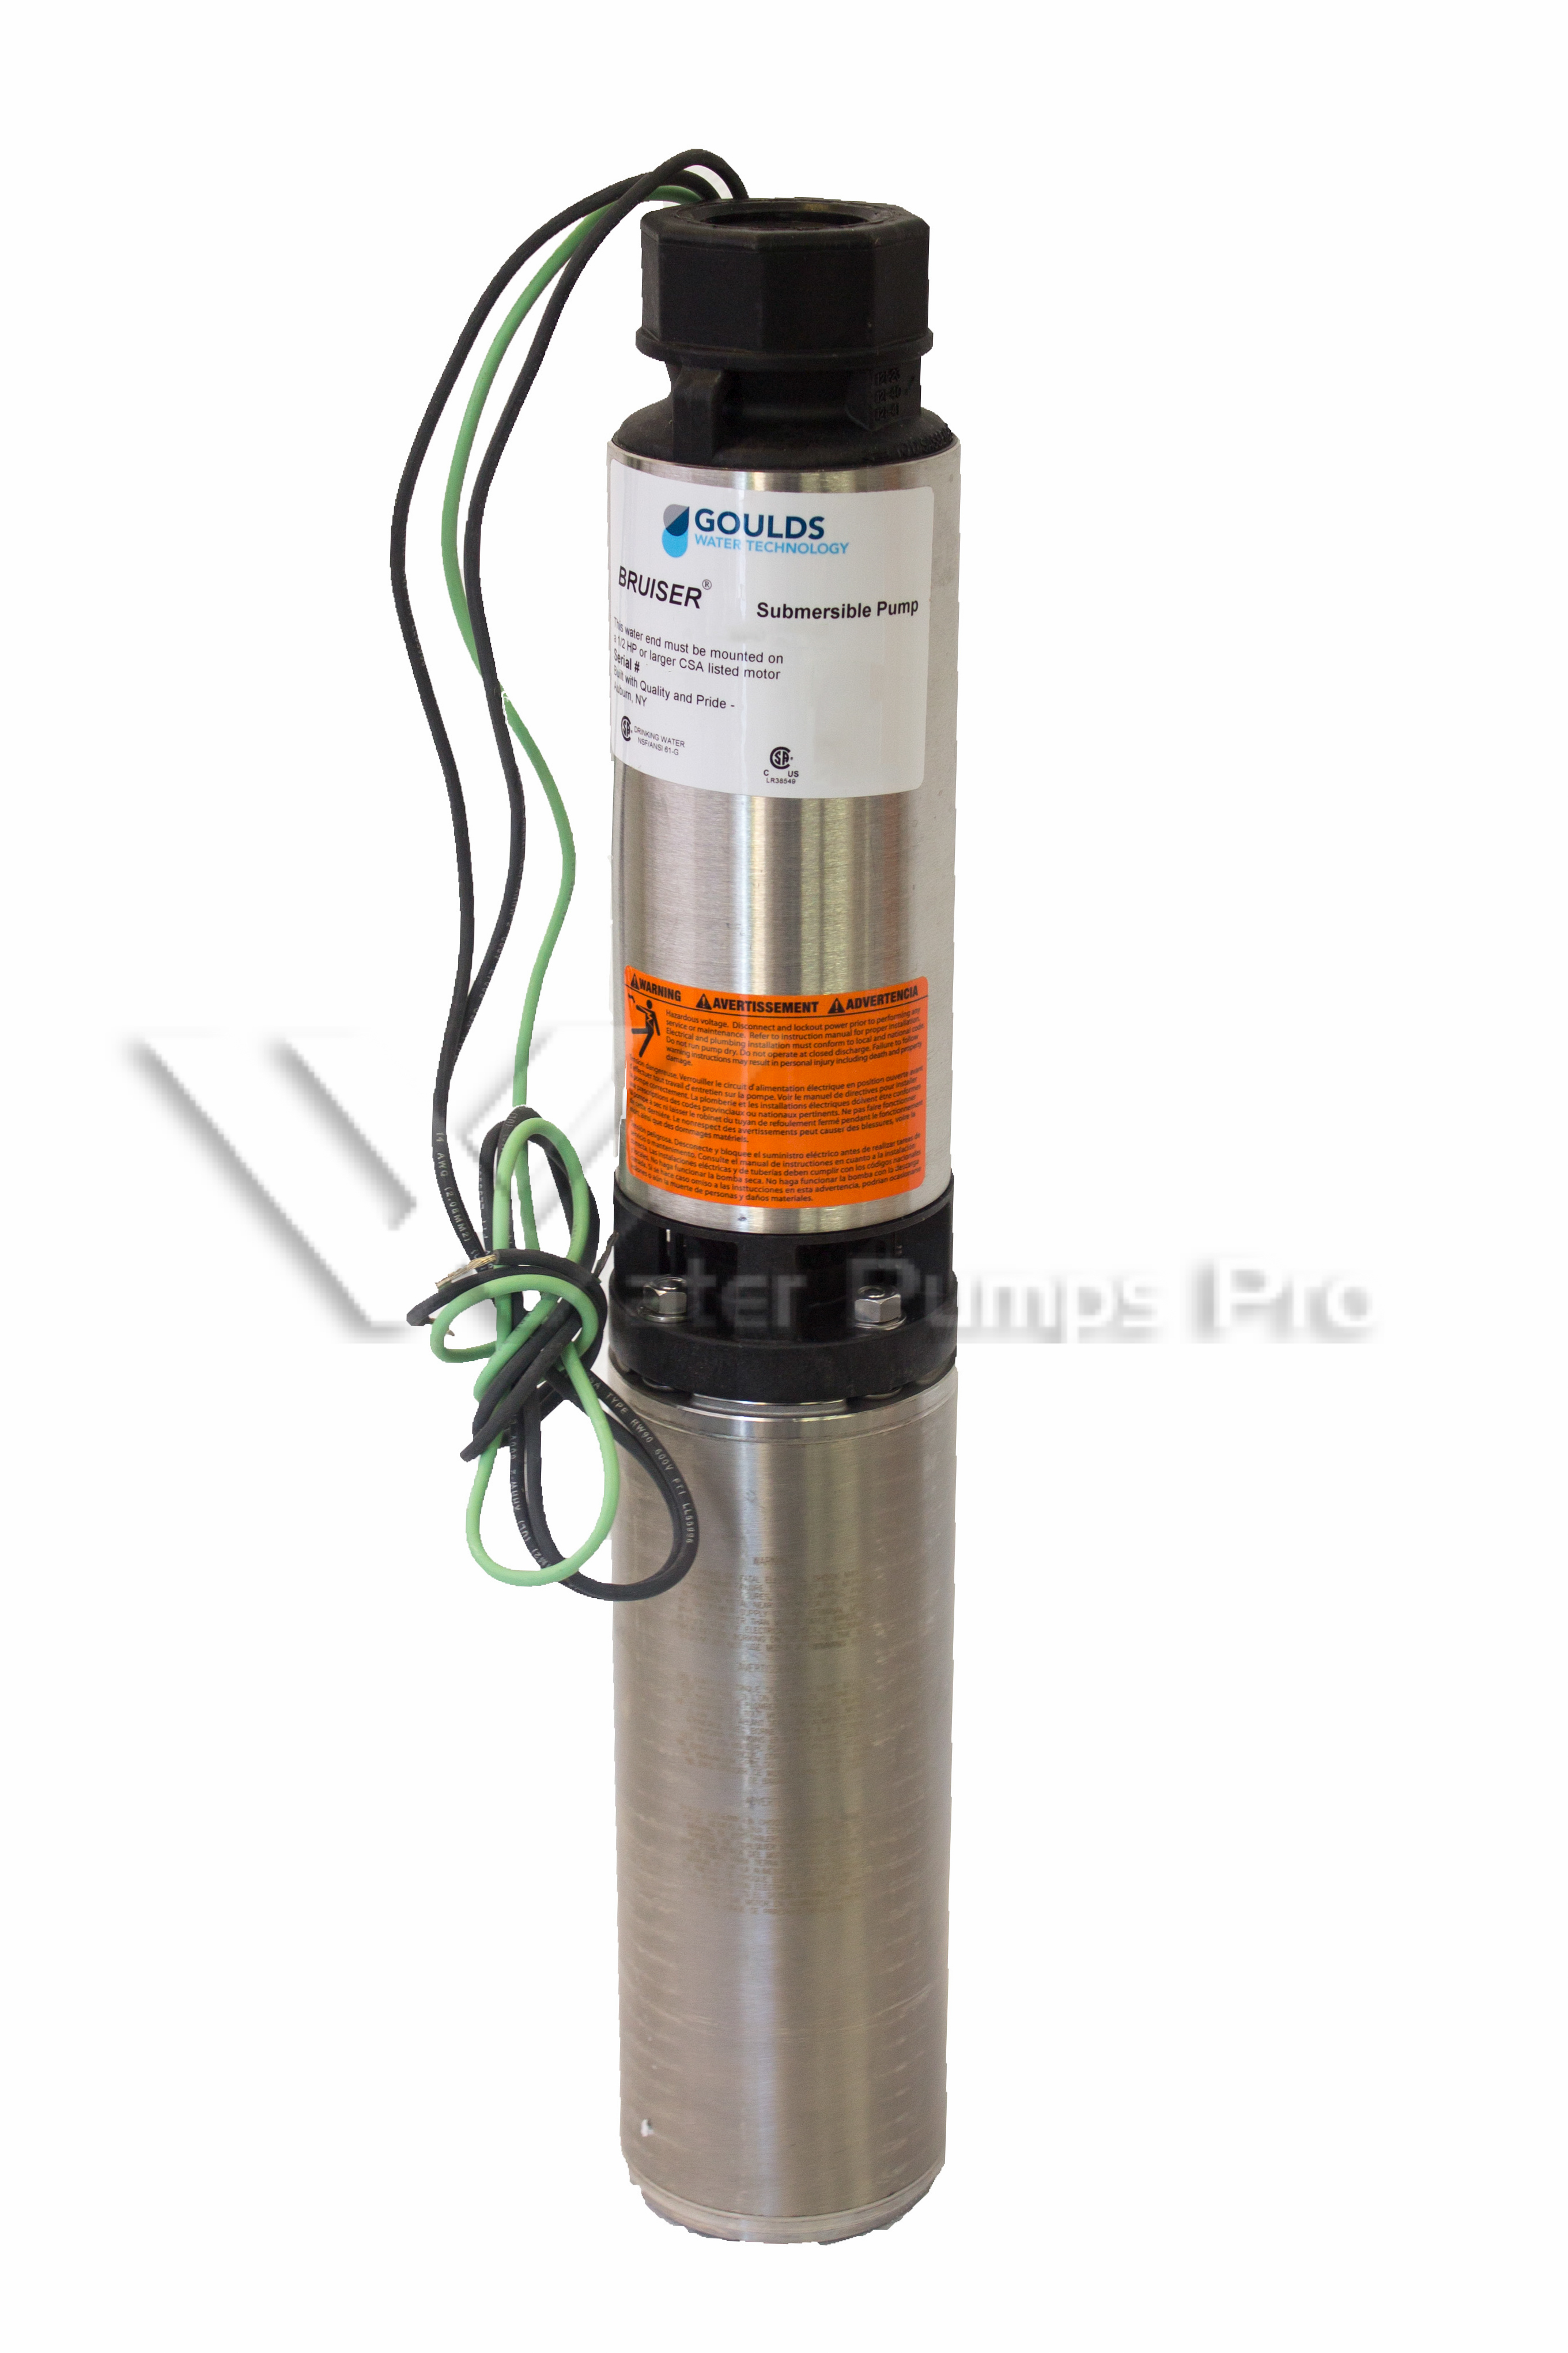 Goulds 10SB07422C 10GMP 3/4HP 230V Submersible Water Well Pump